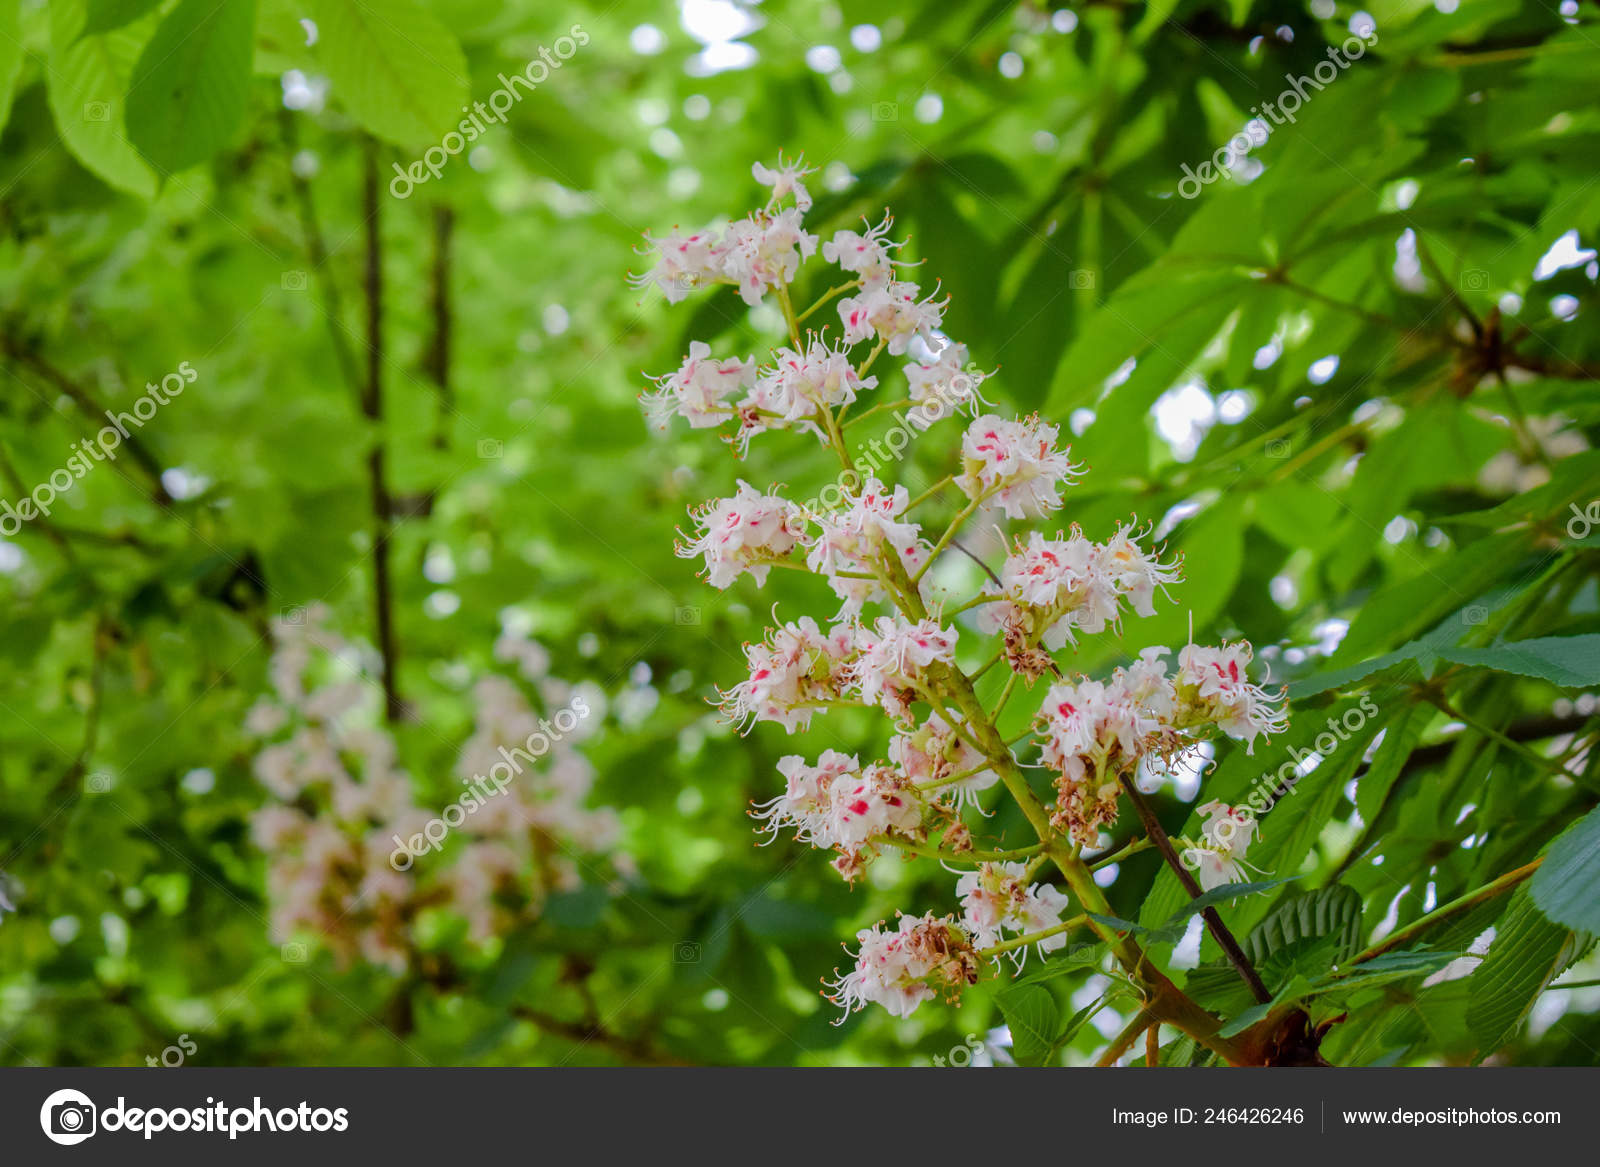 Chestnut Flowers Spring Colored Its Green Leaves Stock Photo C Olfpicture 246426246